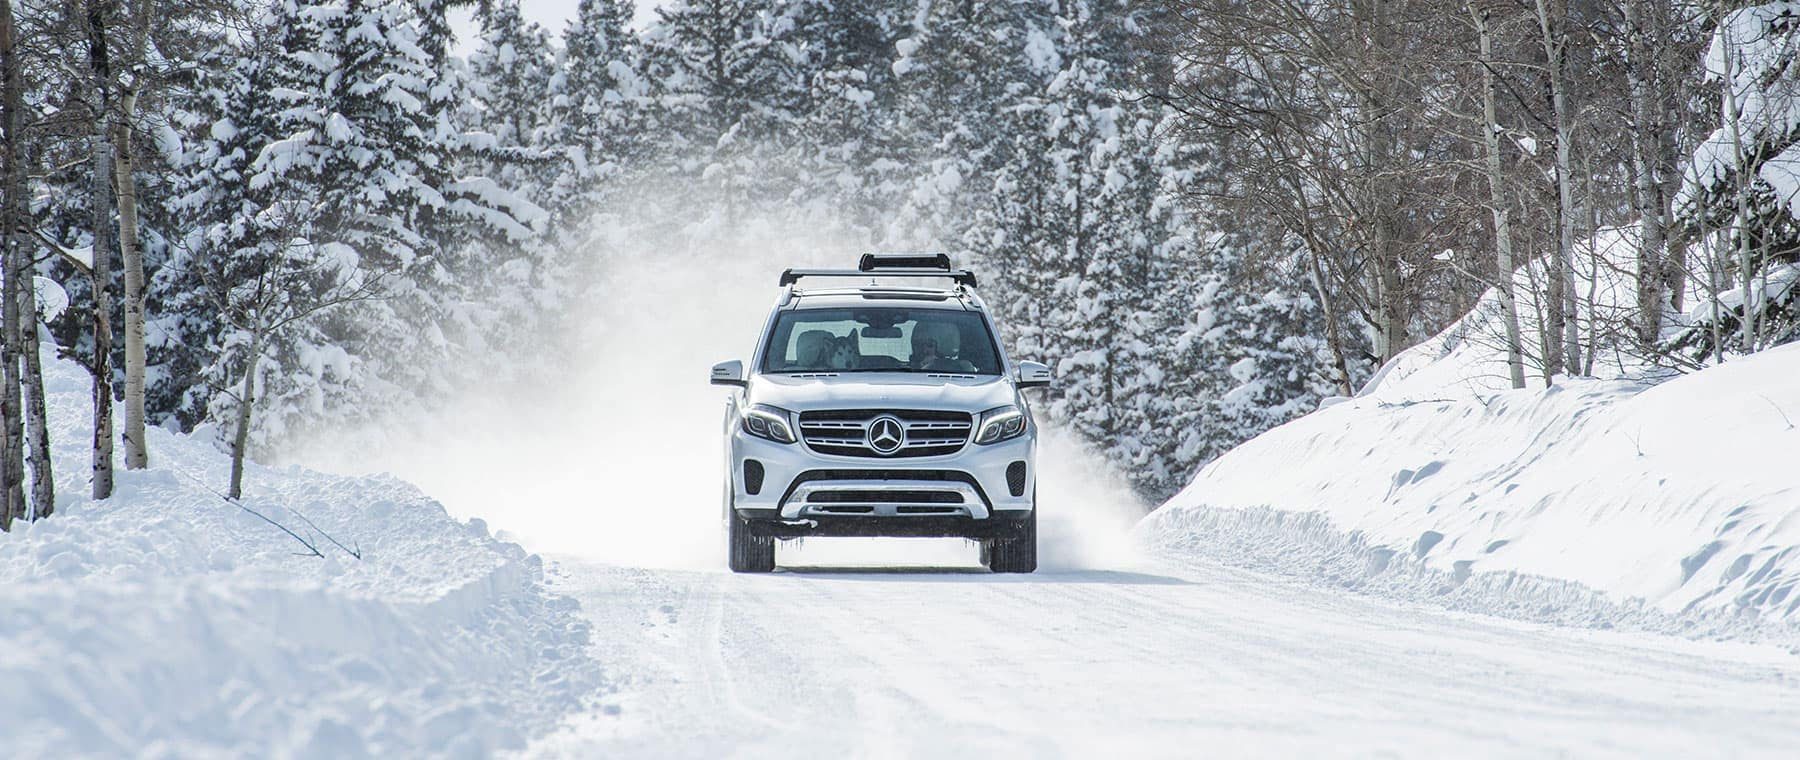 White Mercedes-Benz SUV driving down a road covered in snow